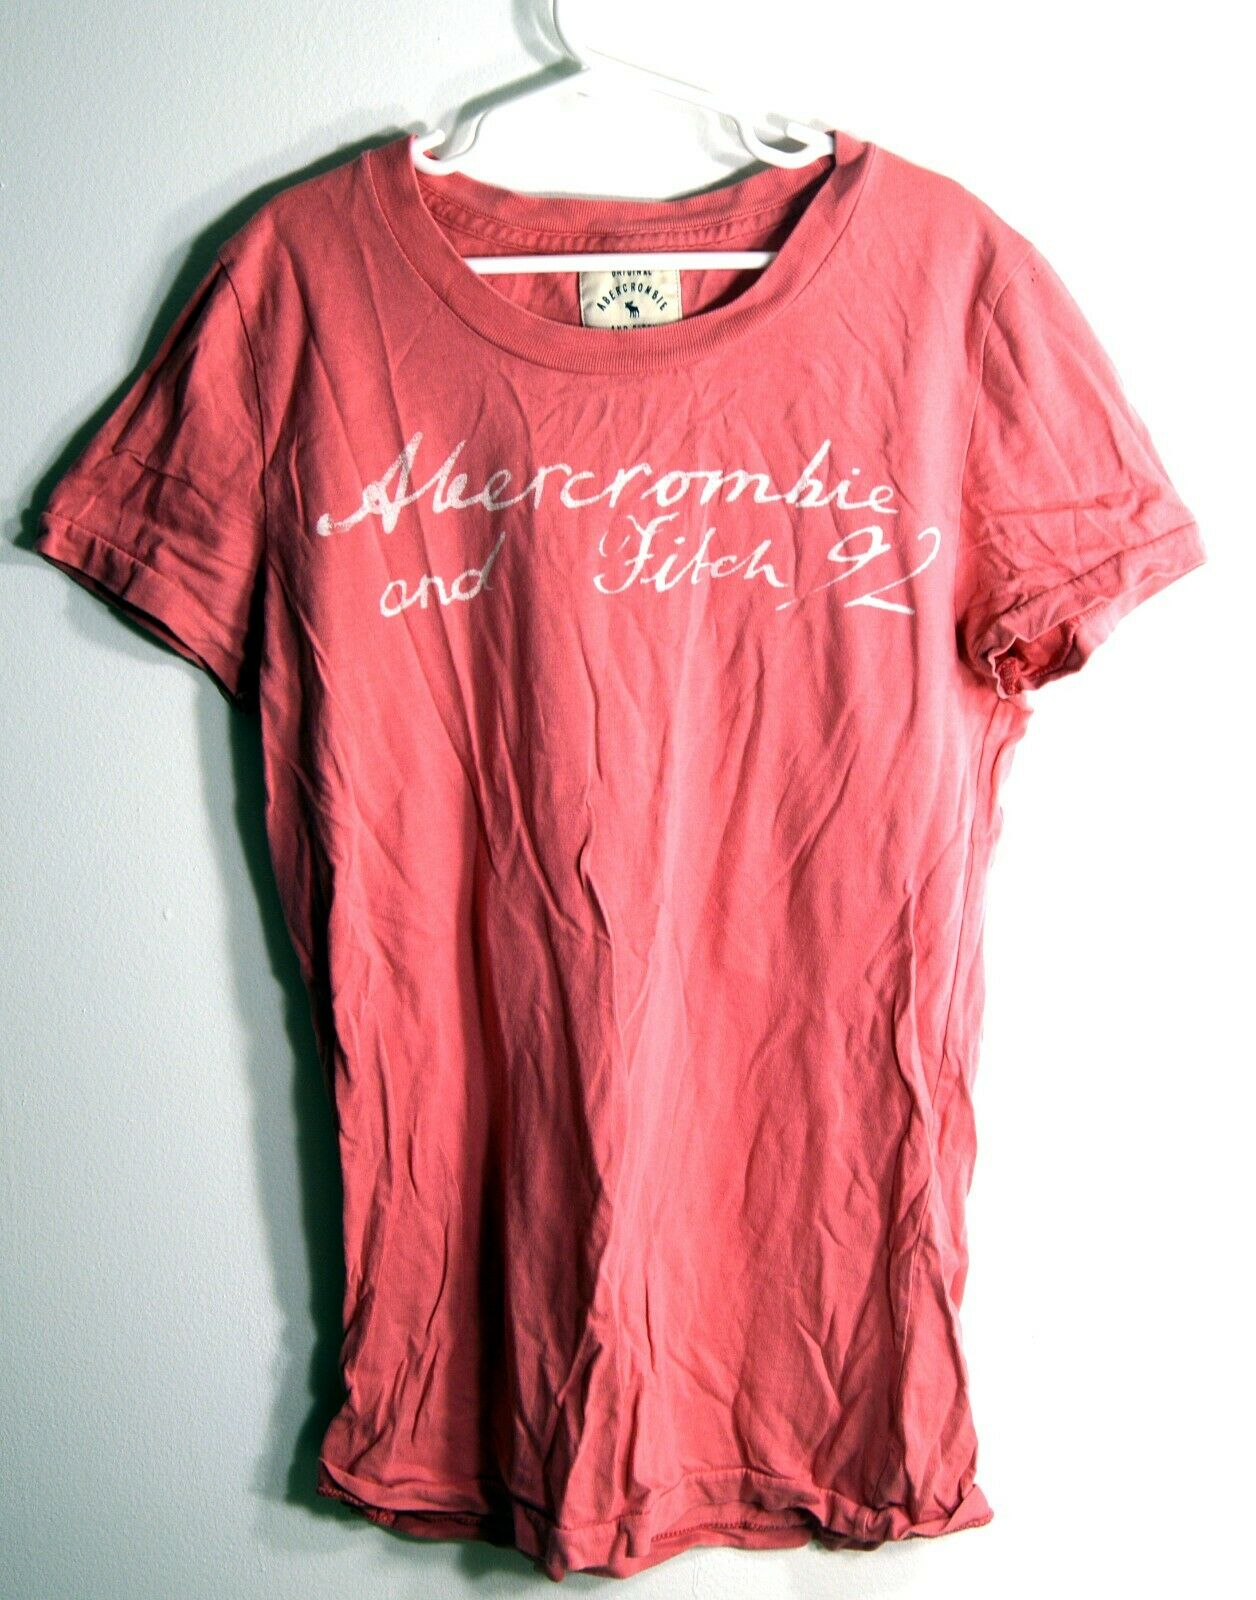 Abercrombie & Fitch Large Girl's Tshirt Pink Youth Size L Tee